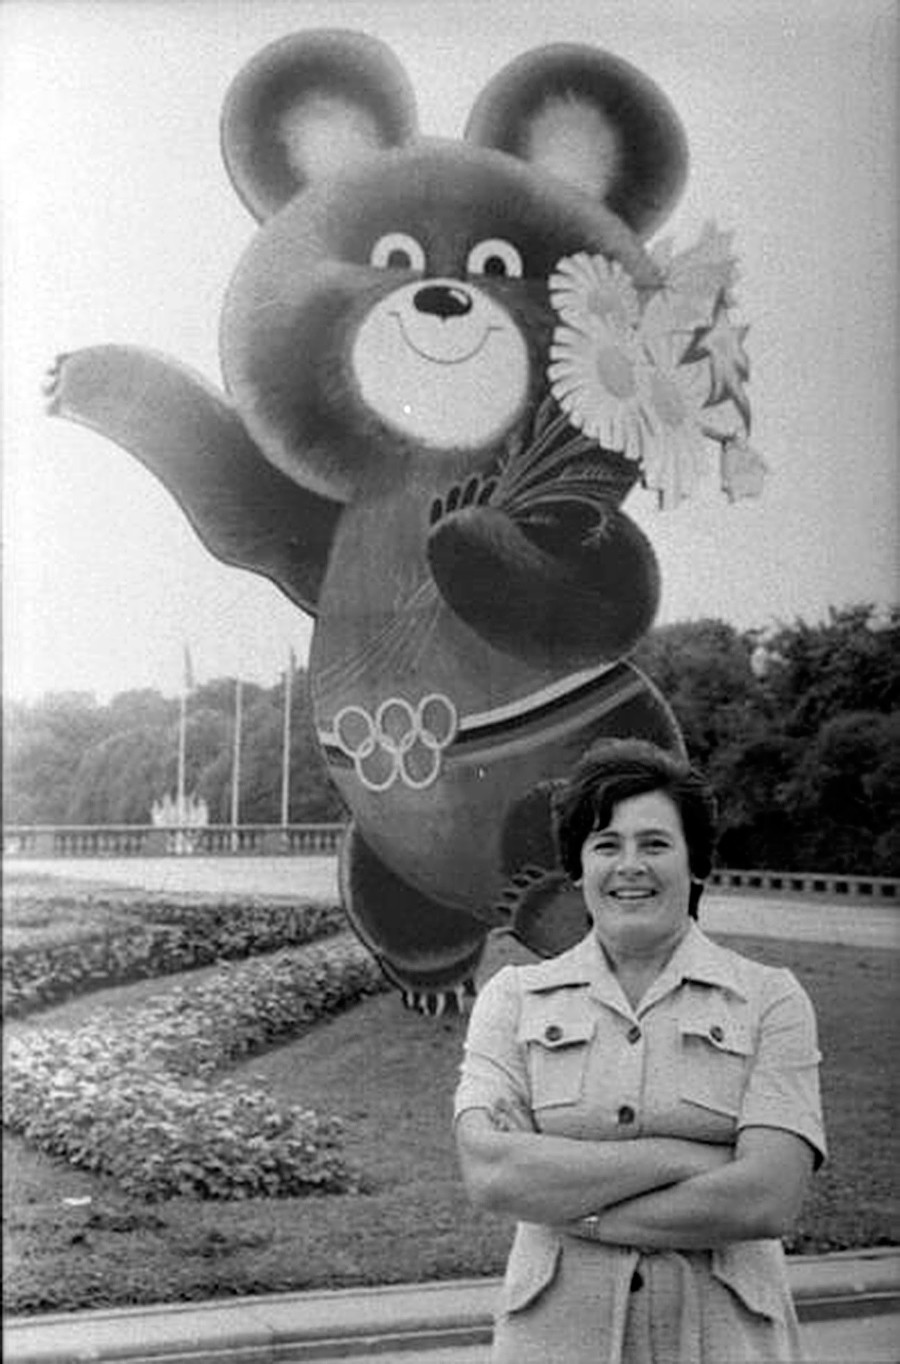 Portrait of a woman in front of Mishka, the mascot of the 1980 Moscow Olympics